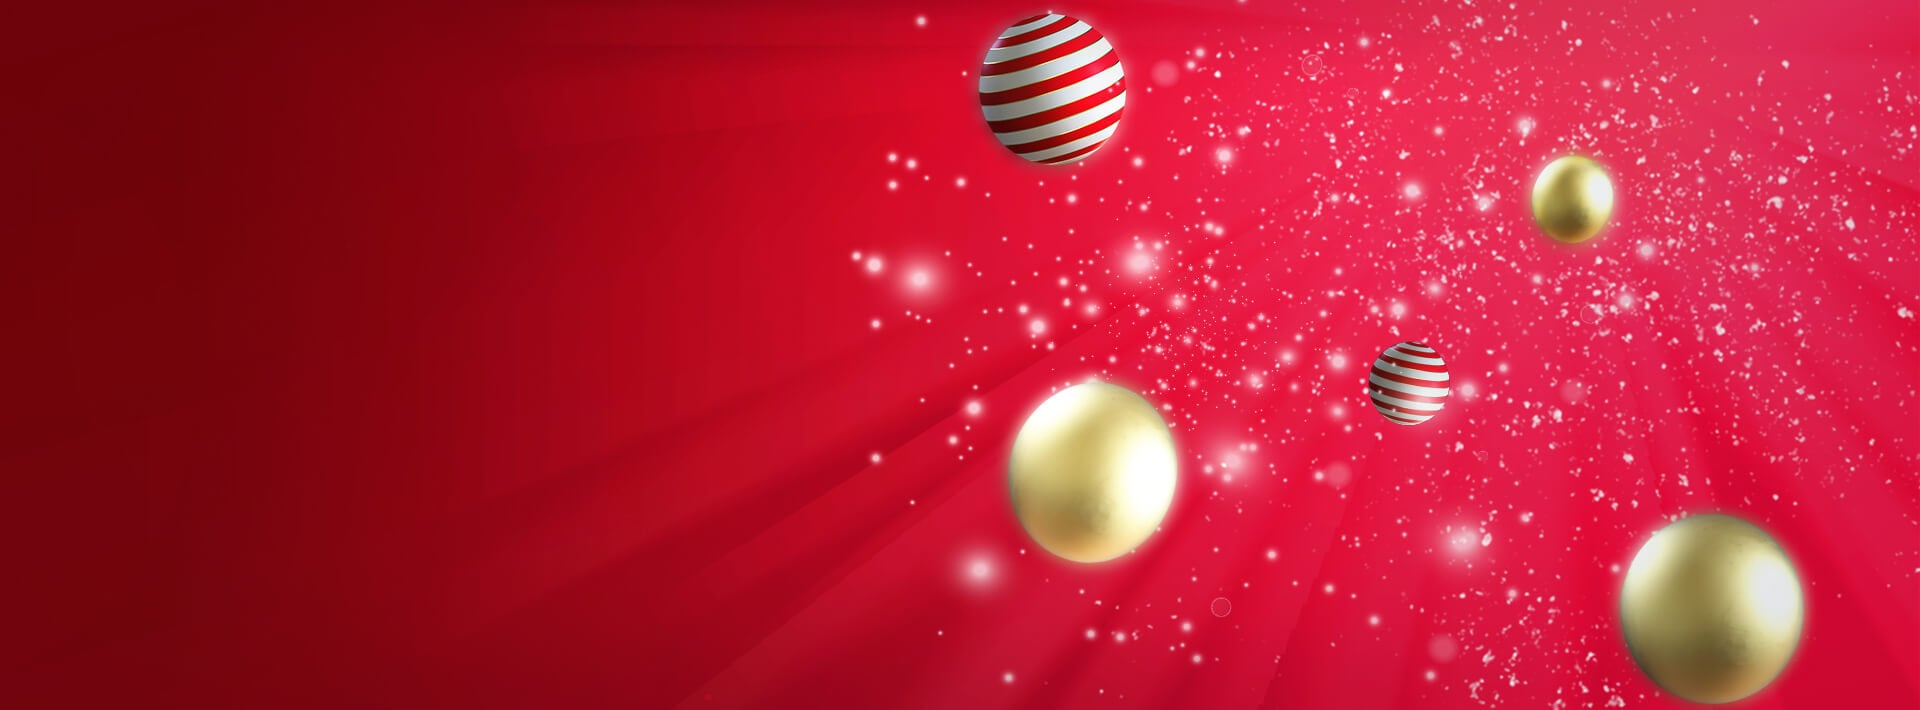 Red background with christmas ornaments